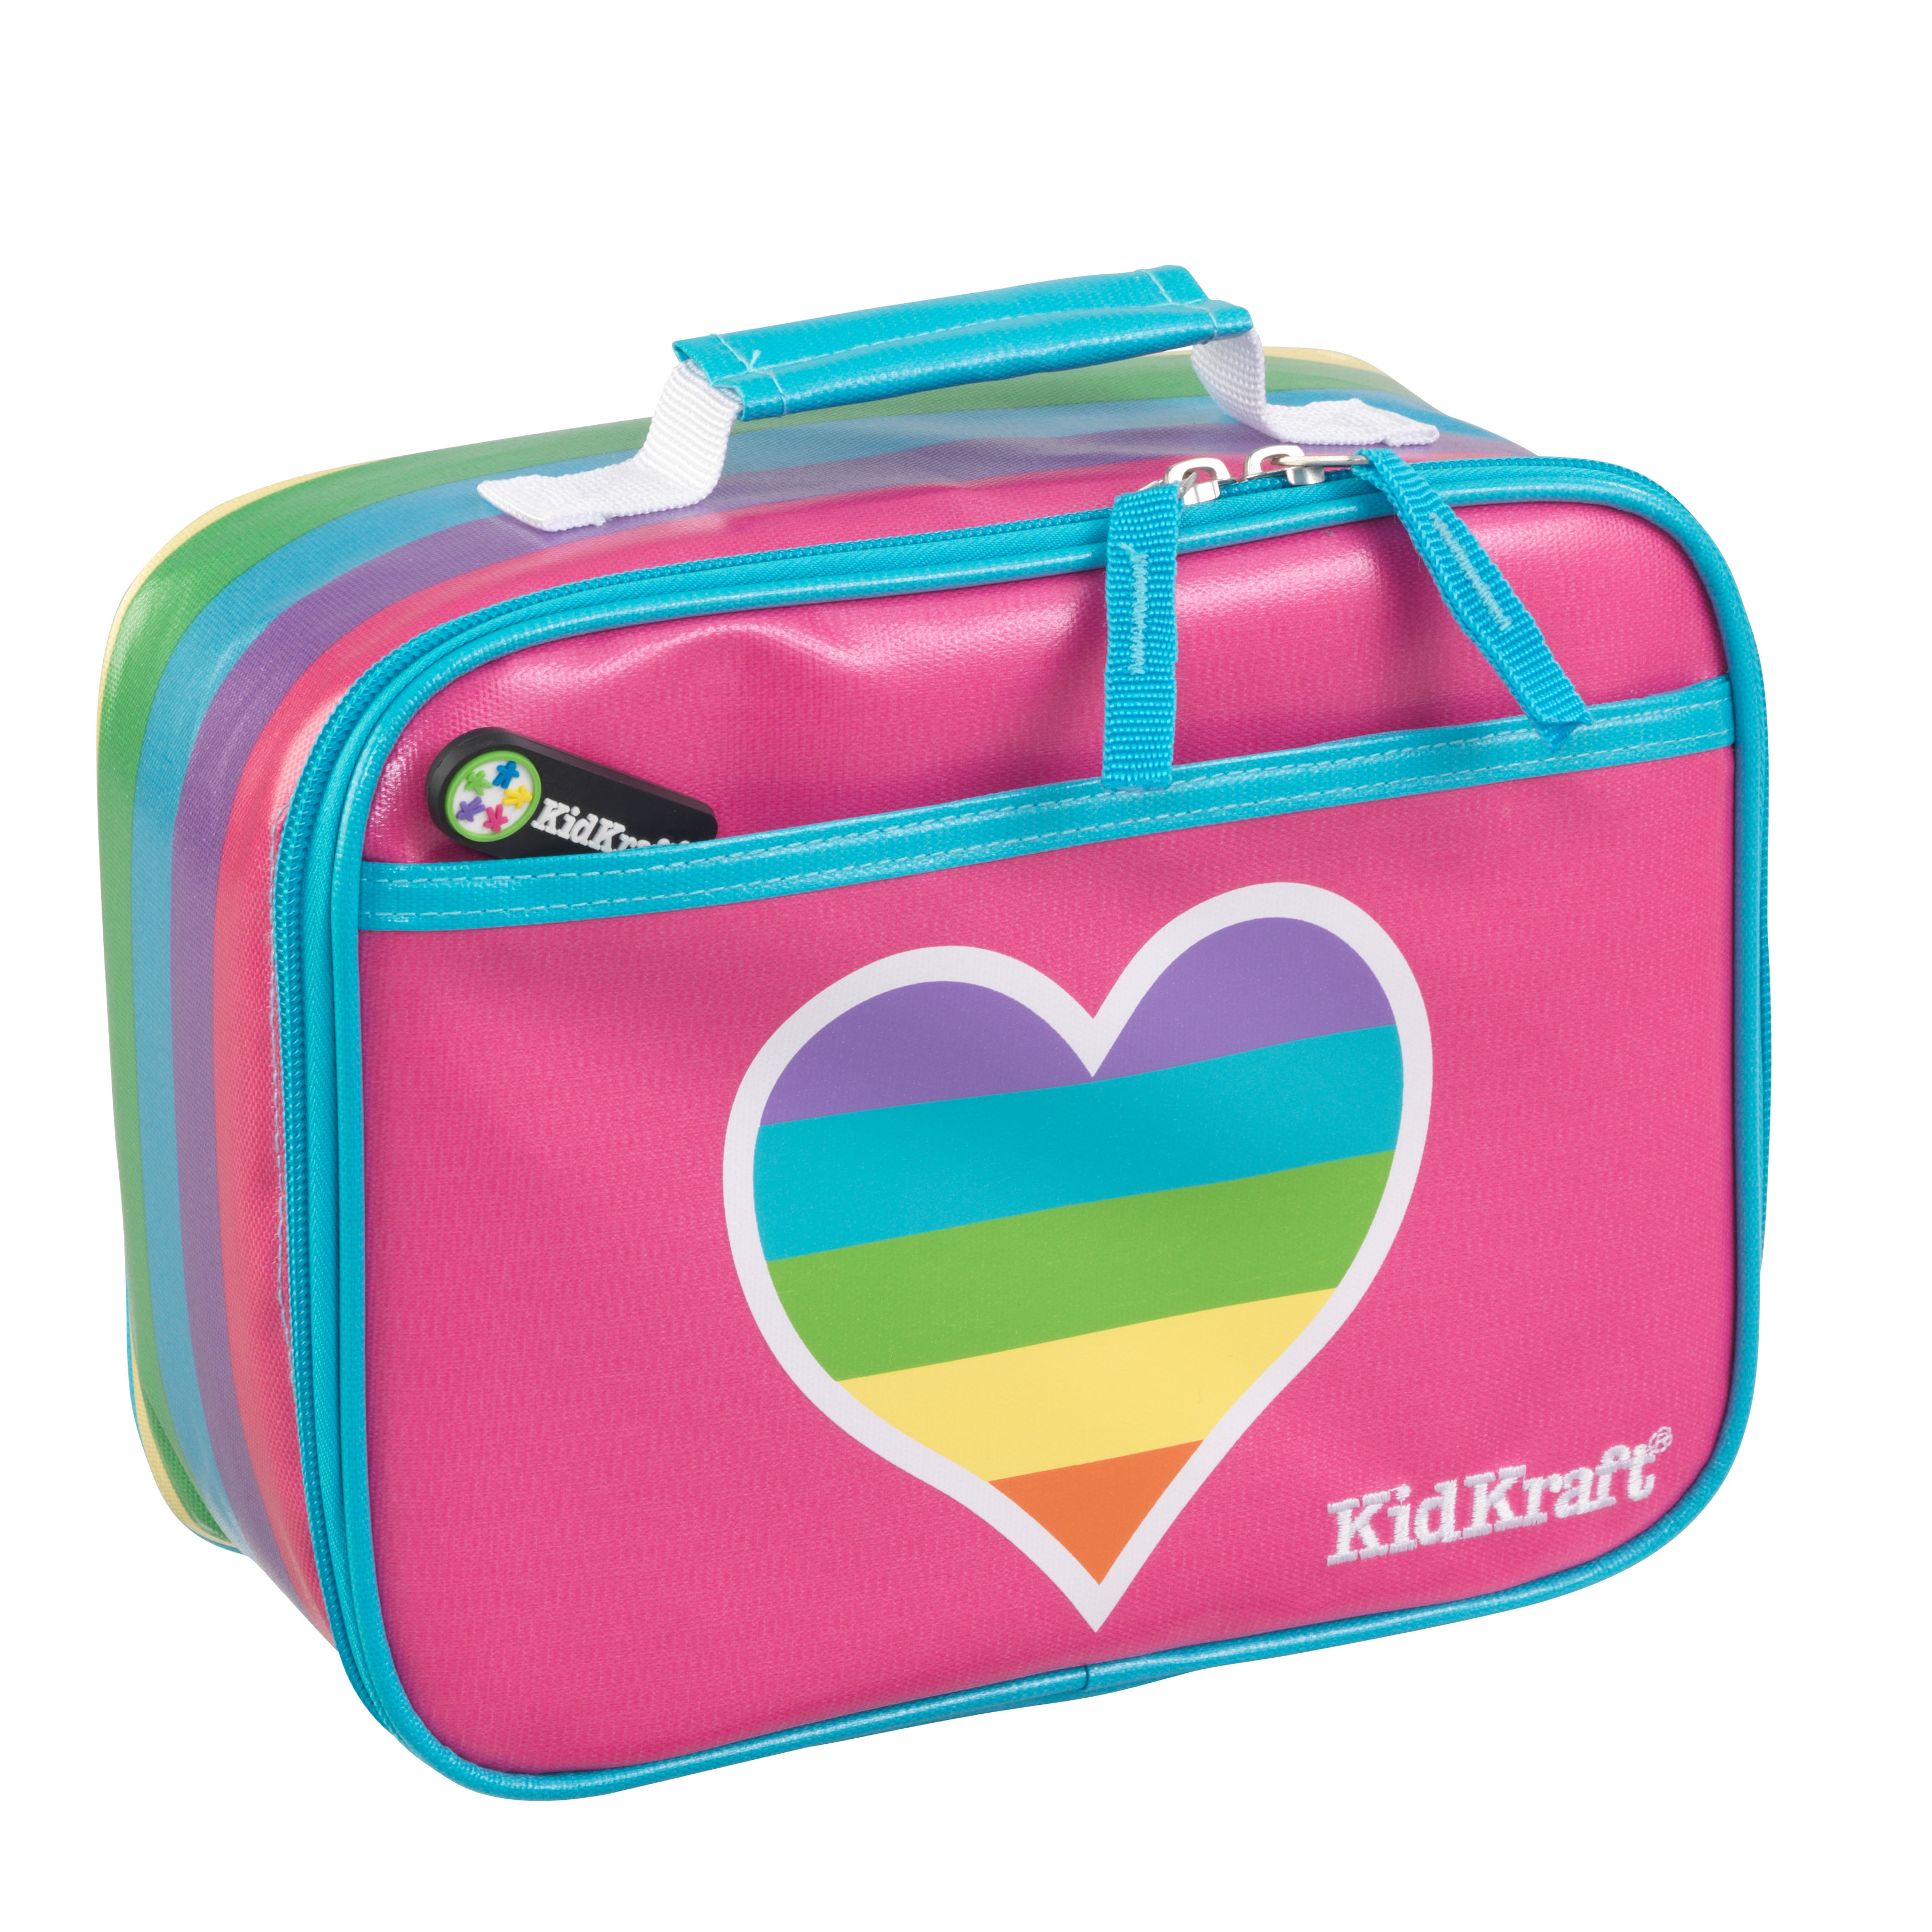 KidKraft Lunch Box - Rainbow